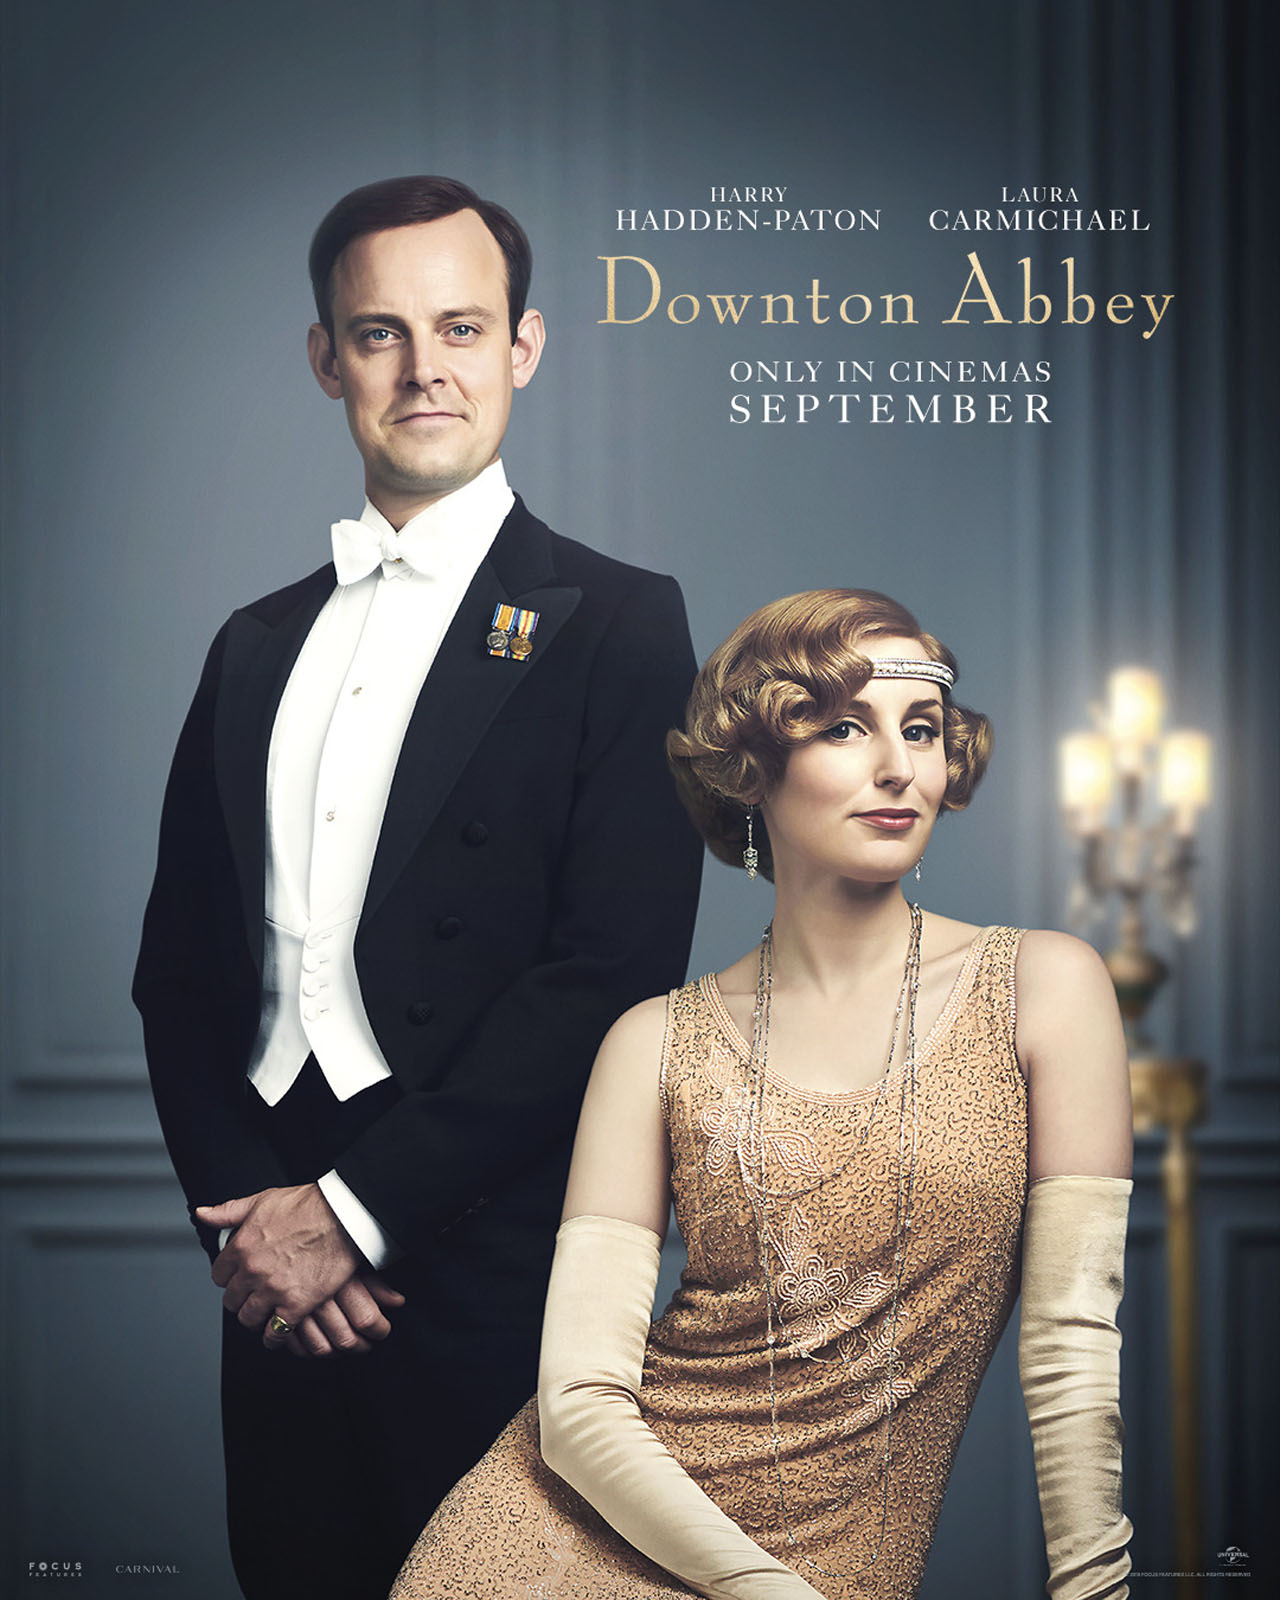 Downton Abbey The Movie Character Posters Herbert Pelham and Lady Edith Crawley